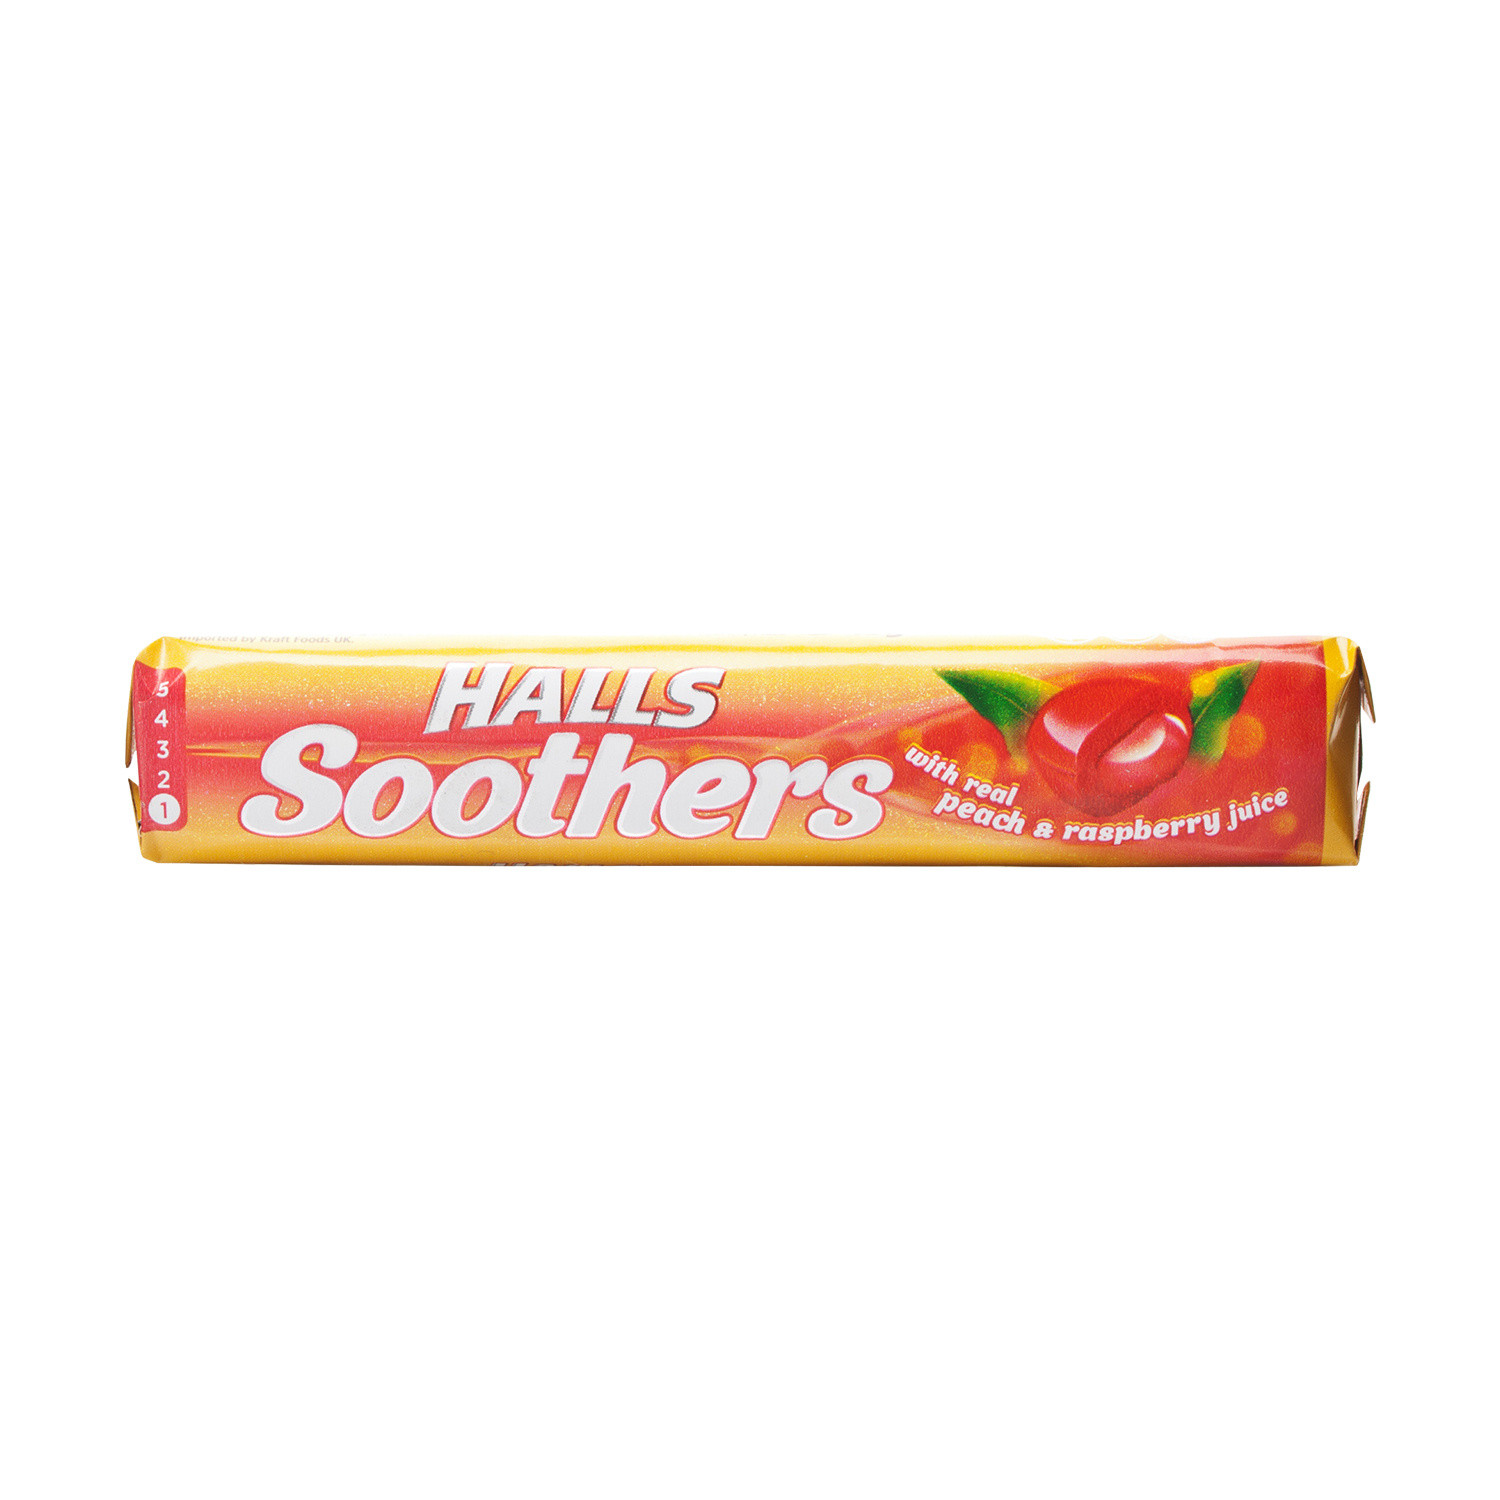 Halls Soothers Peach & Raspberry 10 Lozenges- 24 Pack